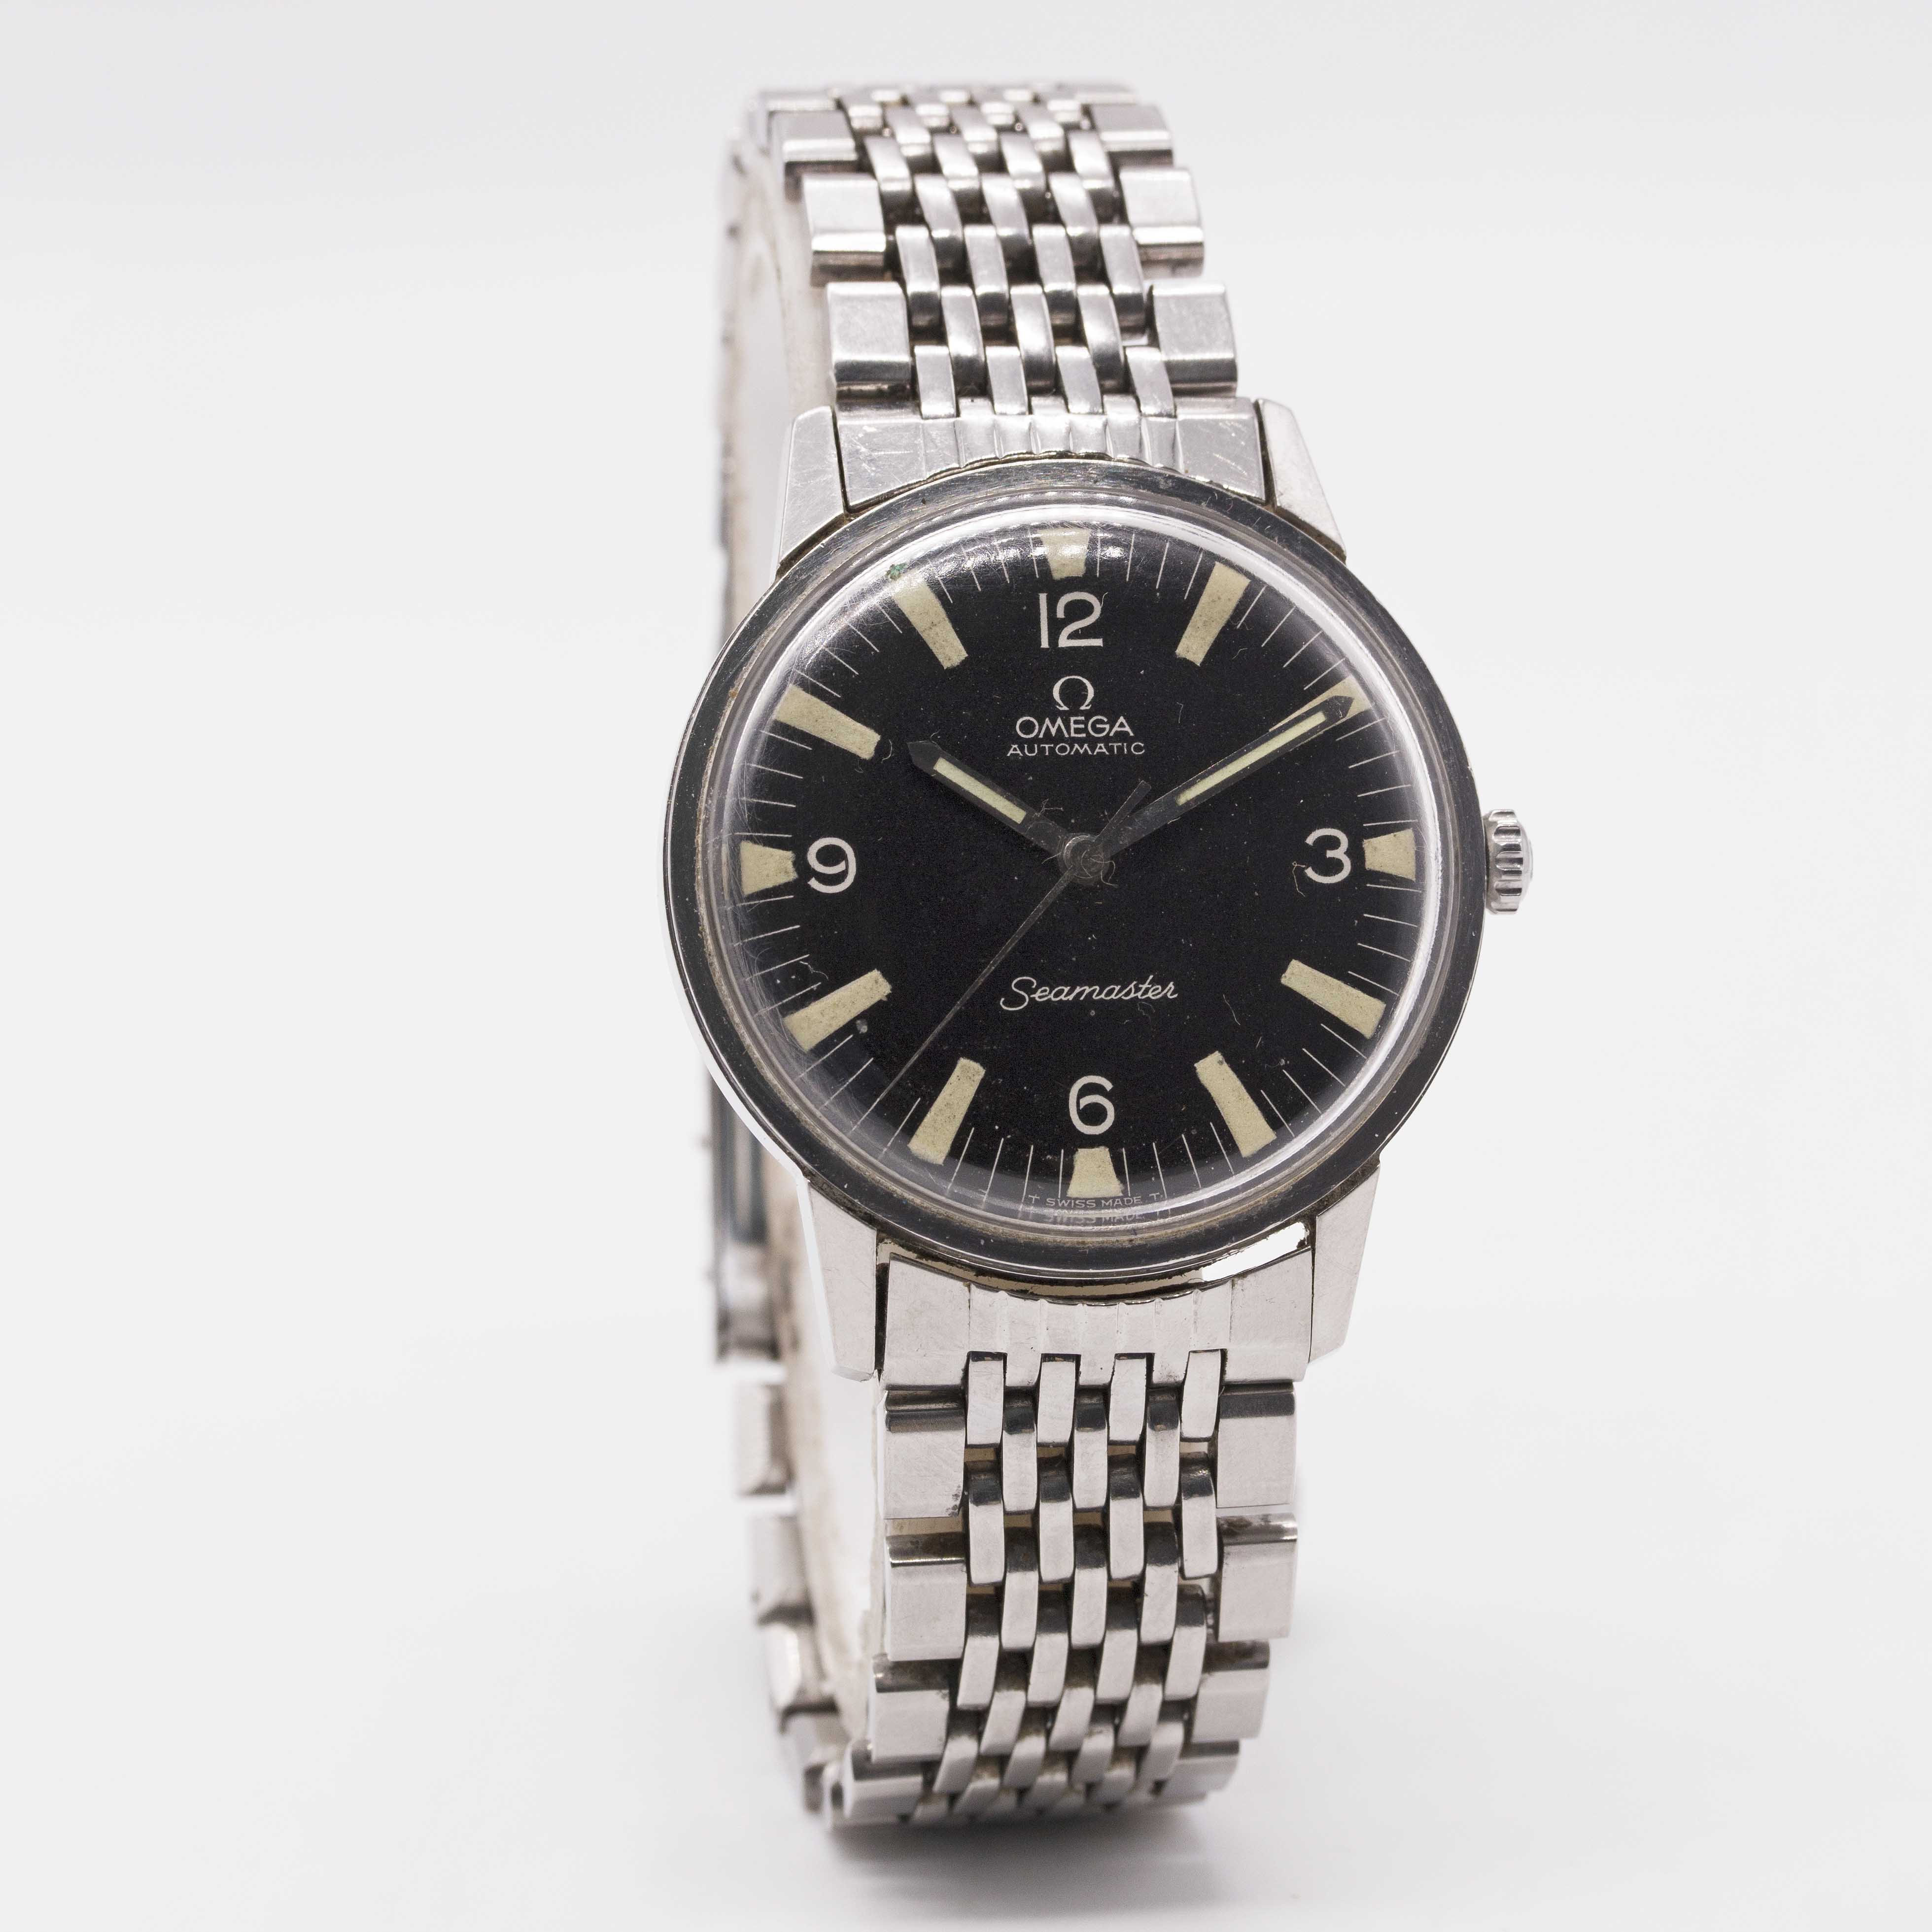 Lot 18 - A GENTLEMAN'S STAINLESS STEEL OMEGA SEAMASTER AUTOMATIC BRACELET WATCH CIRCA 1967, REF. 165.002 WITH